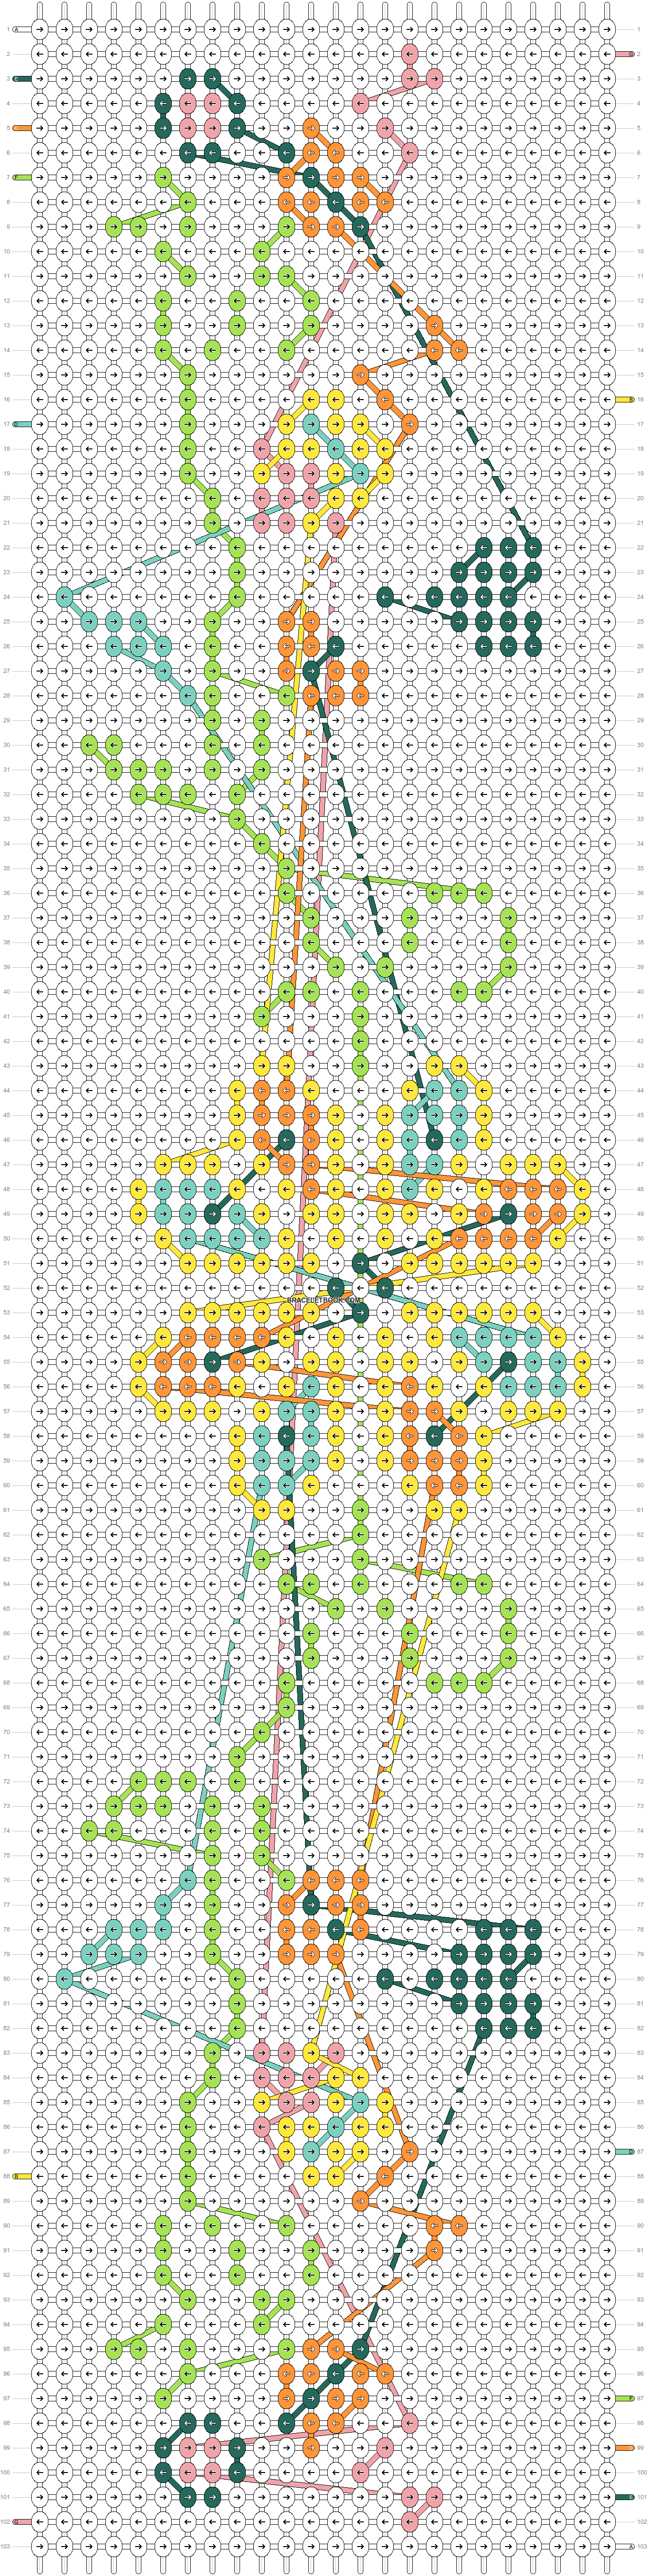 Alpha Pattern #22165 added by neopets